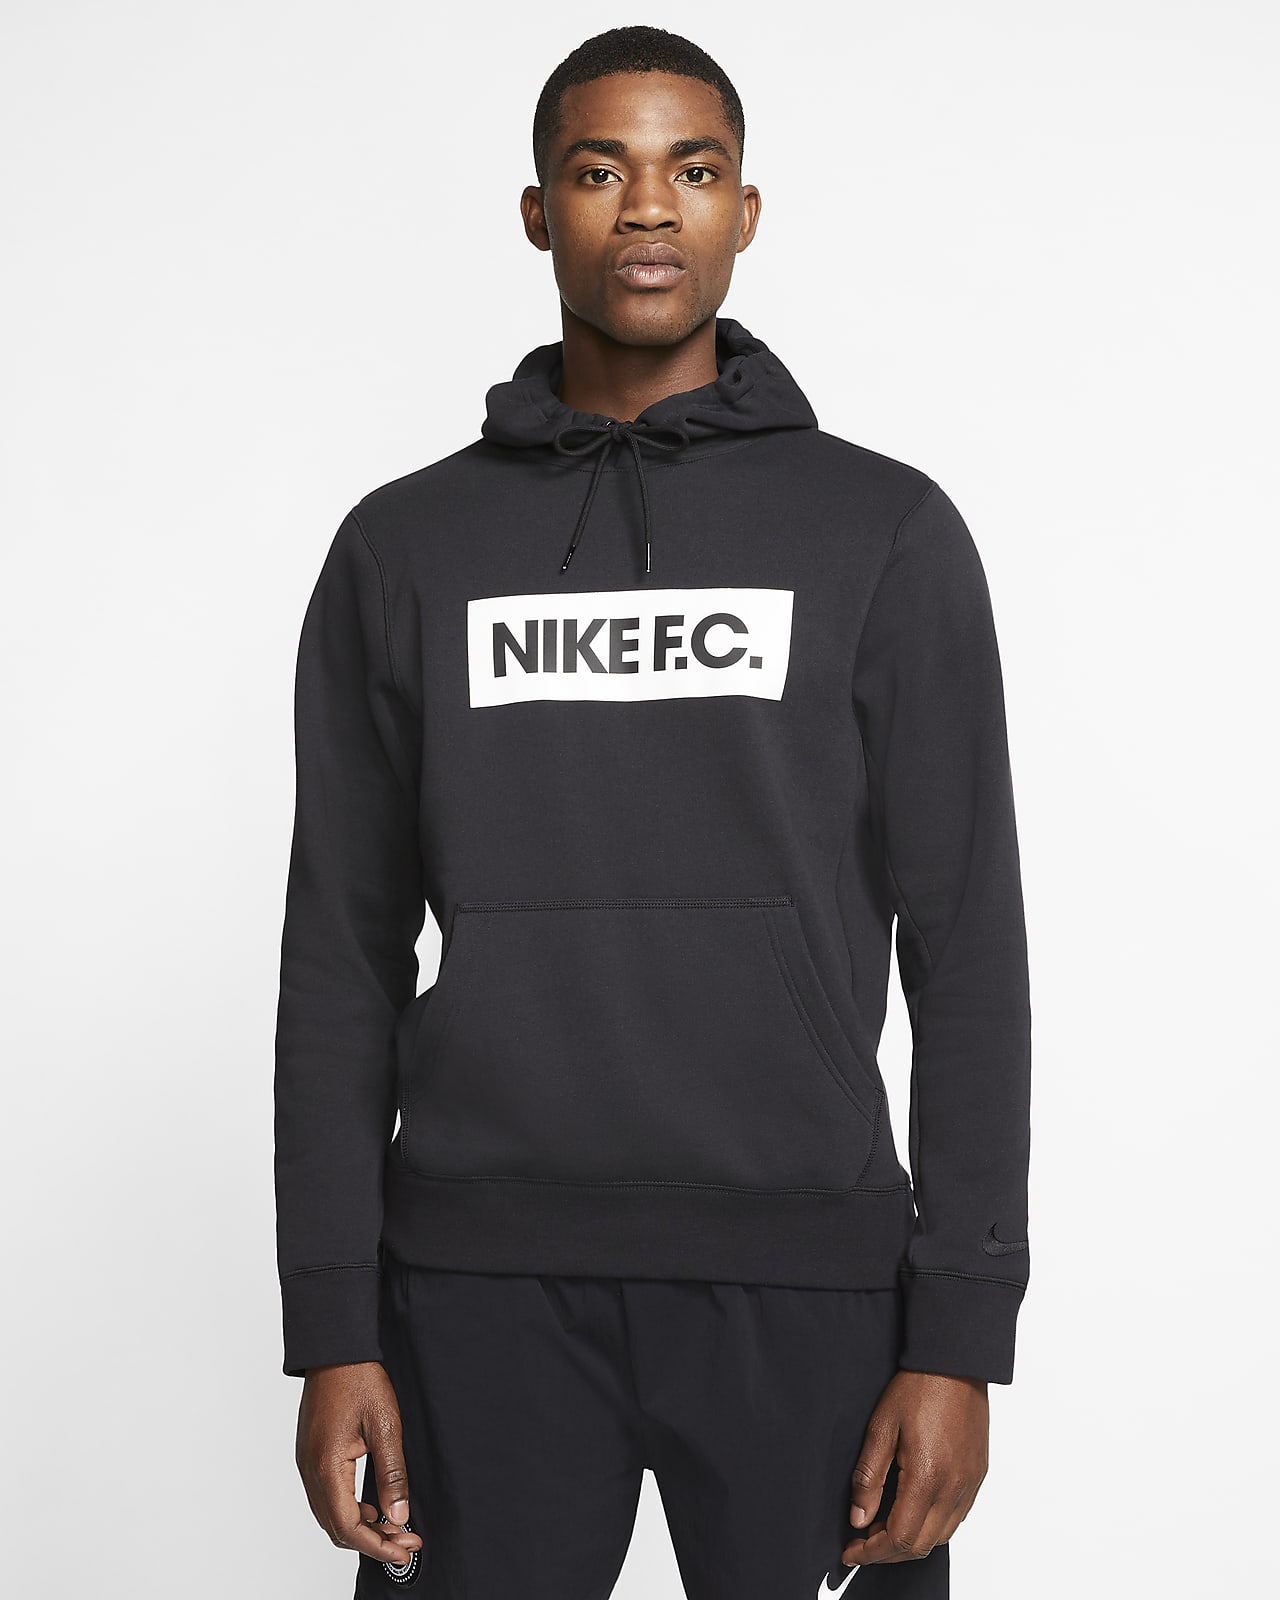 Nike F.C. Men's Pullover Fleece Football Hoodie